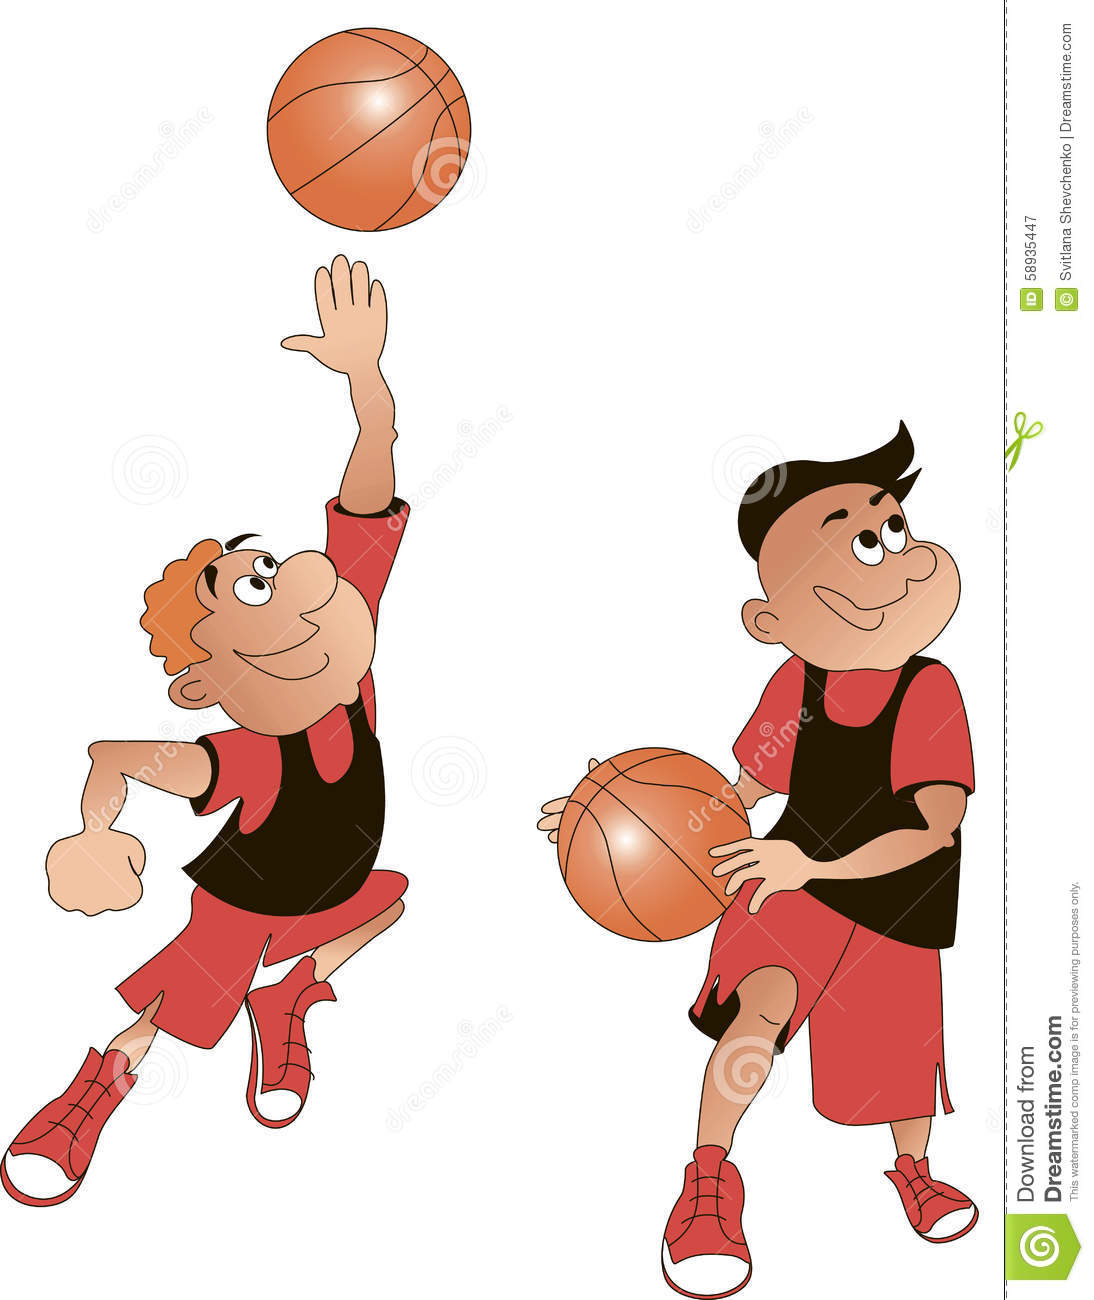 Basketball Players Cartoon, Vector Stock Vector - Image: 58935447